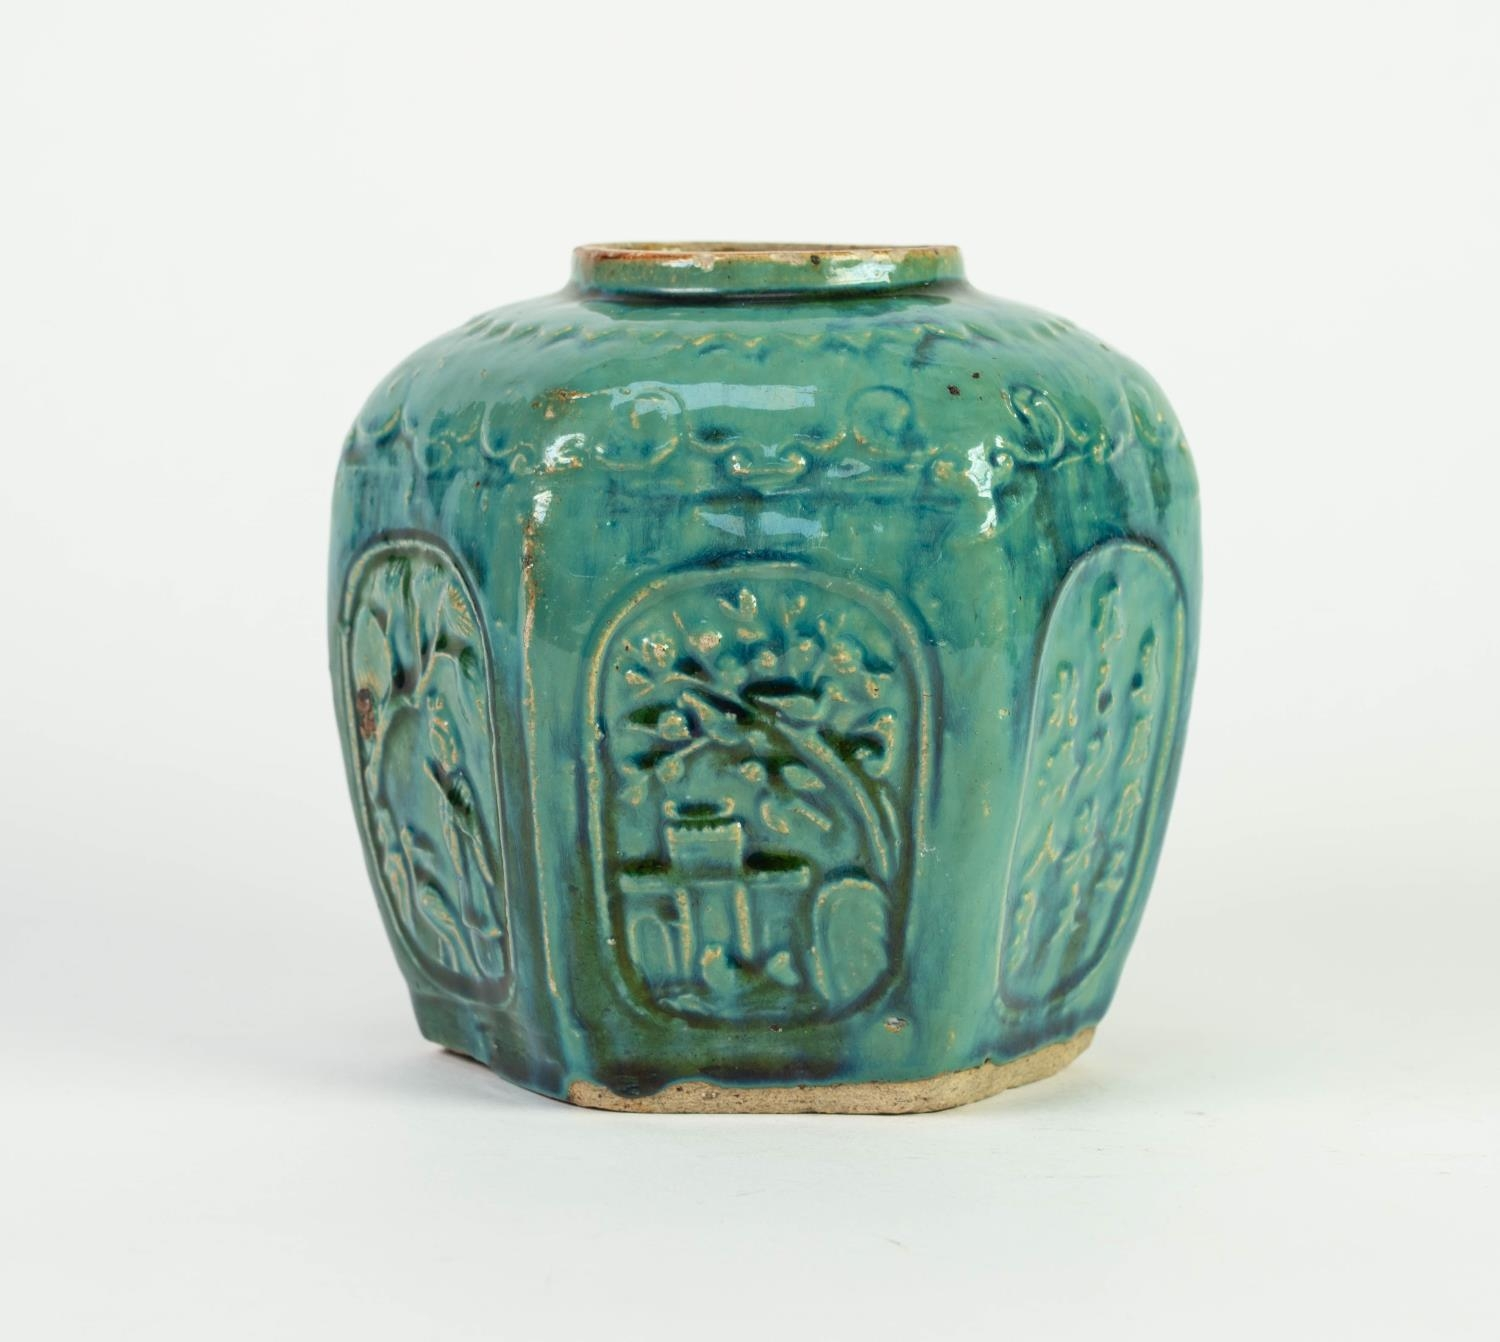 CHINESE PROVINCIAL WARE MOULDED POTTERY GINGER JAR, of hexagonal form, decorated with panels